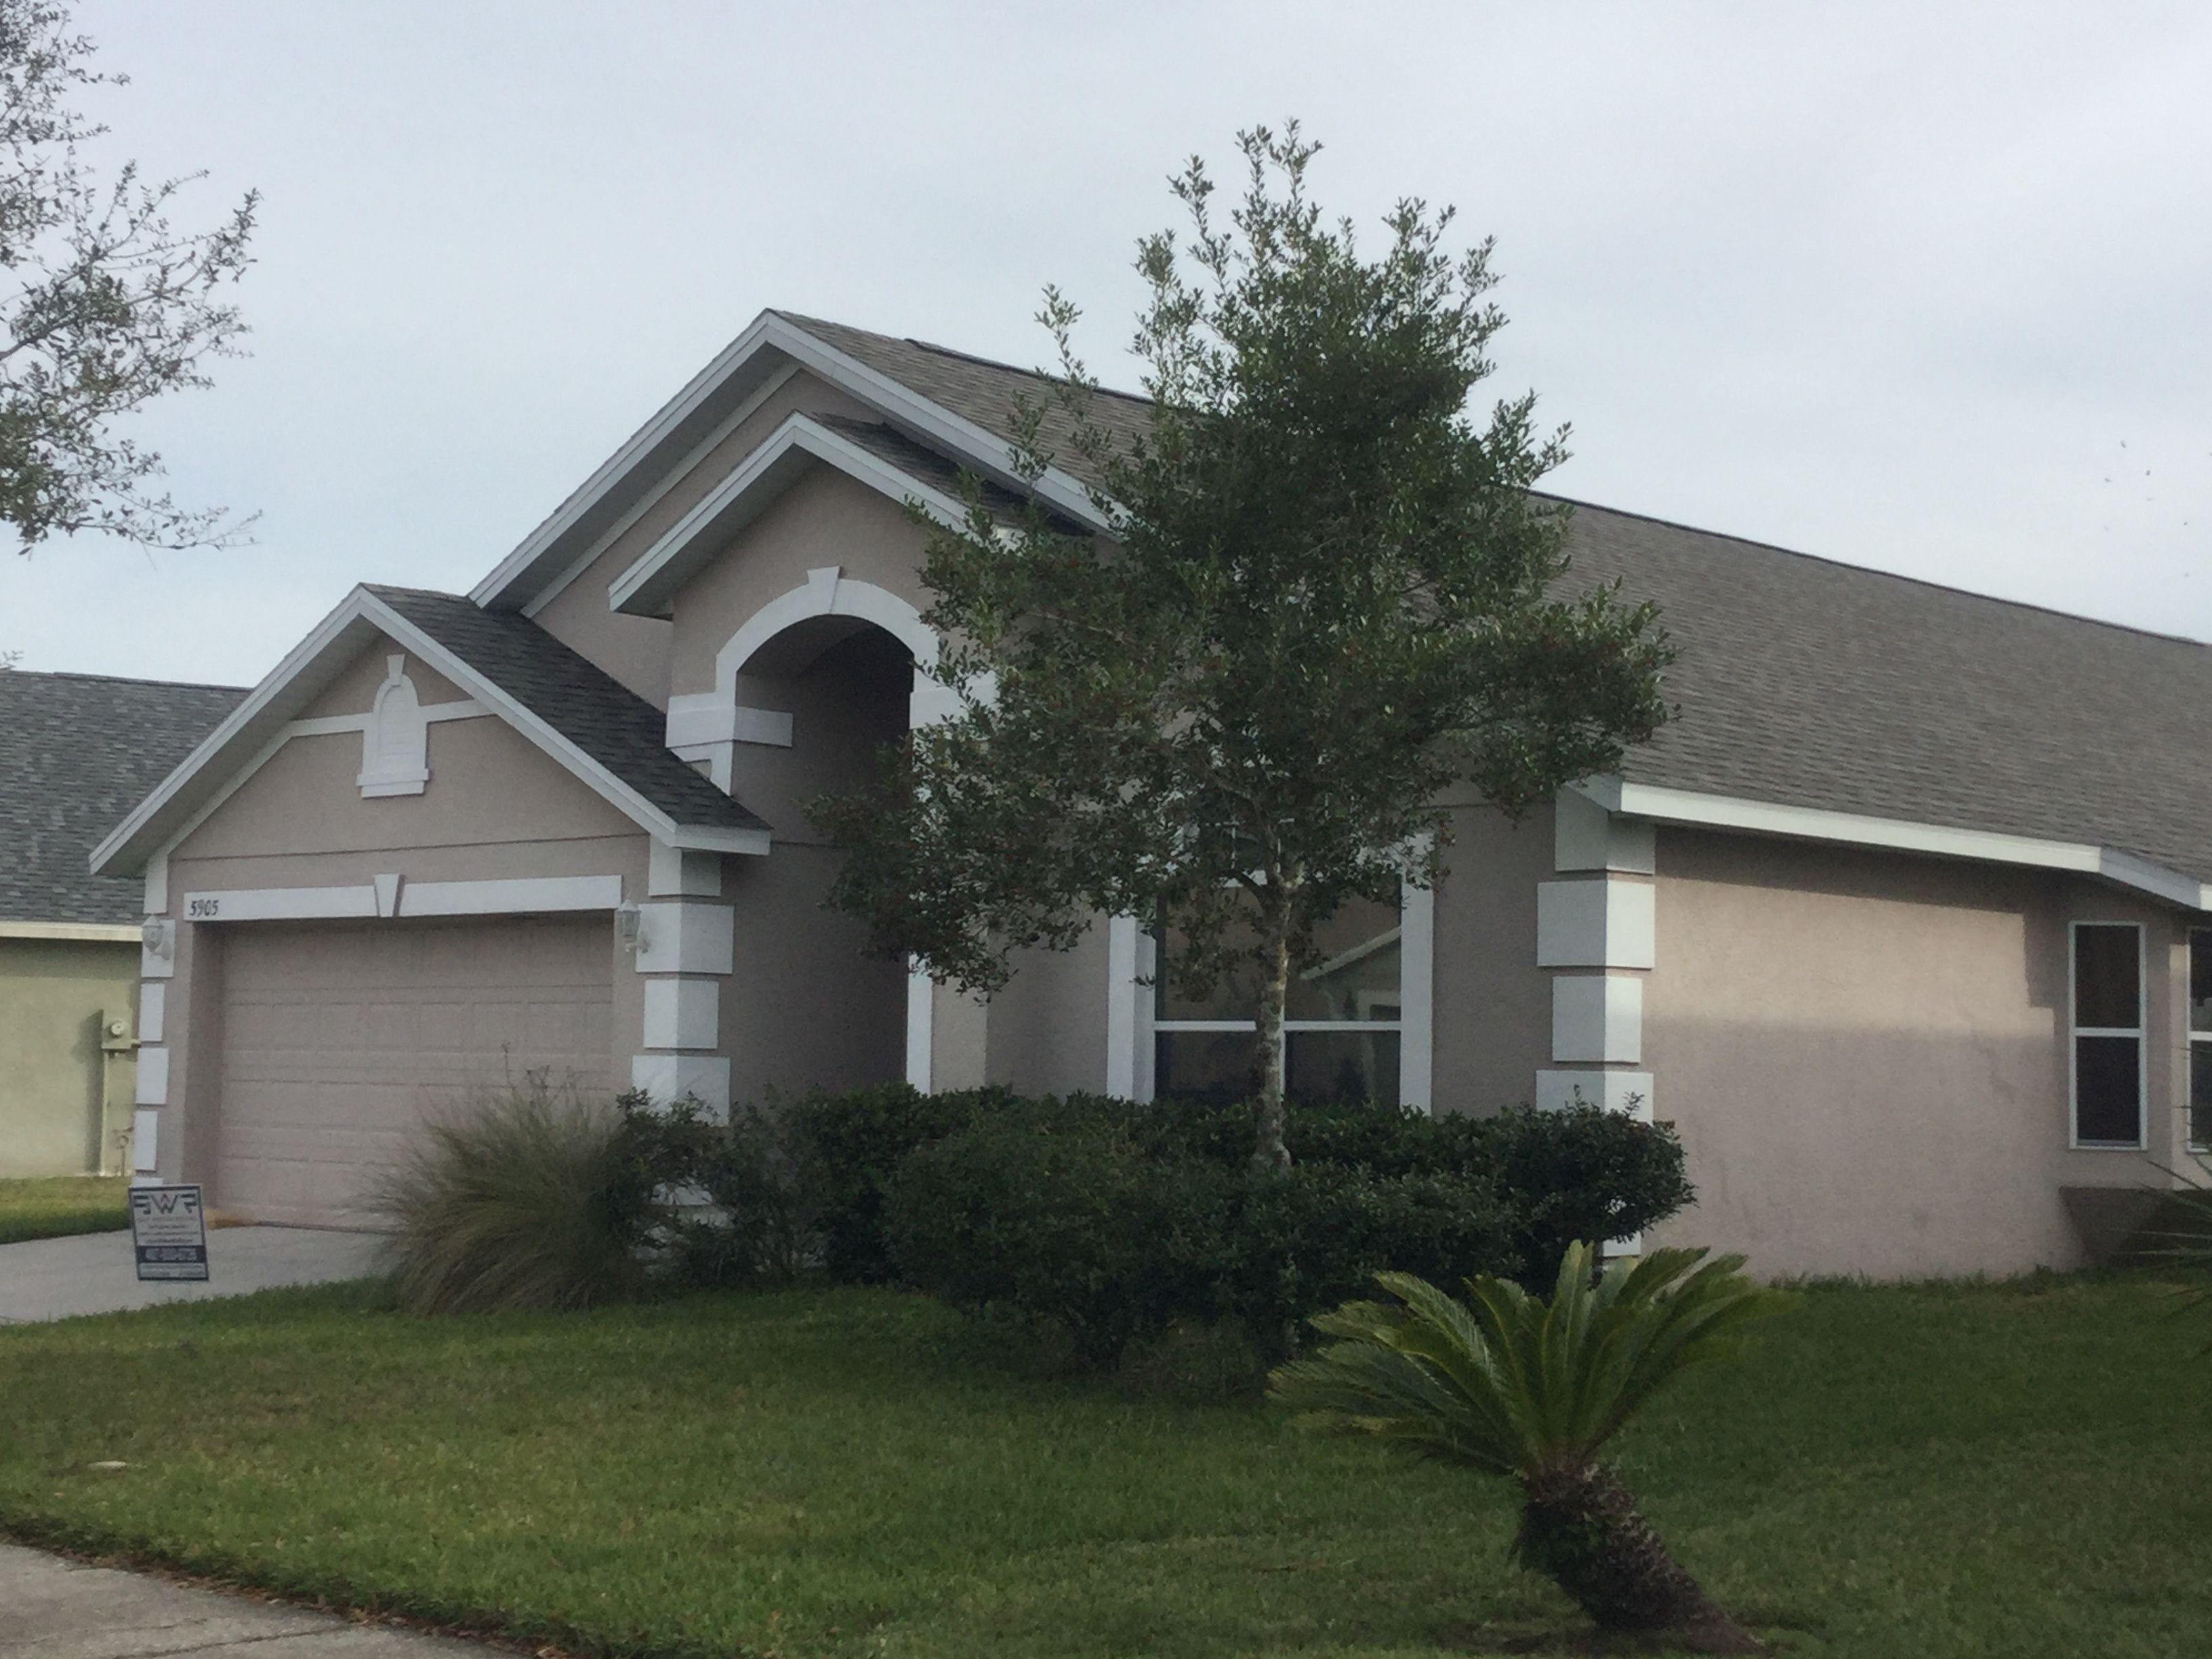 Quality roofing job begins before the shingles go on home remodeling - Certainteed Weatherwood Shingle Roof In Central Florida Installed By Gulf Western Roofing Www